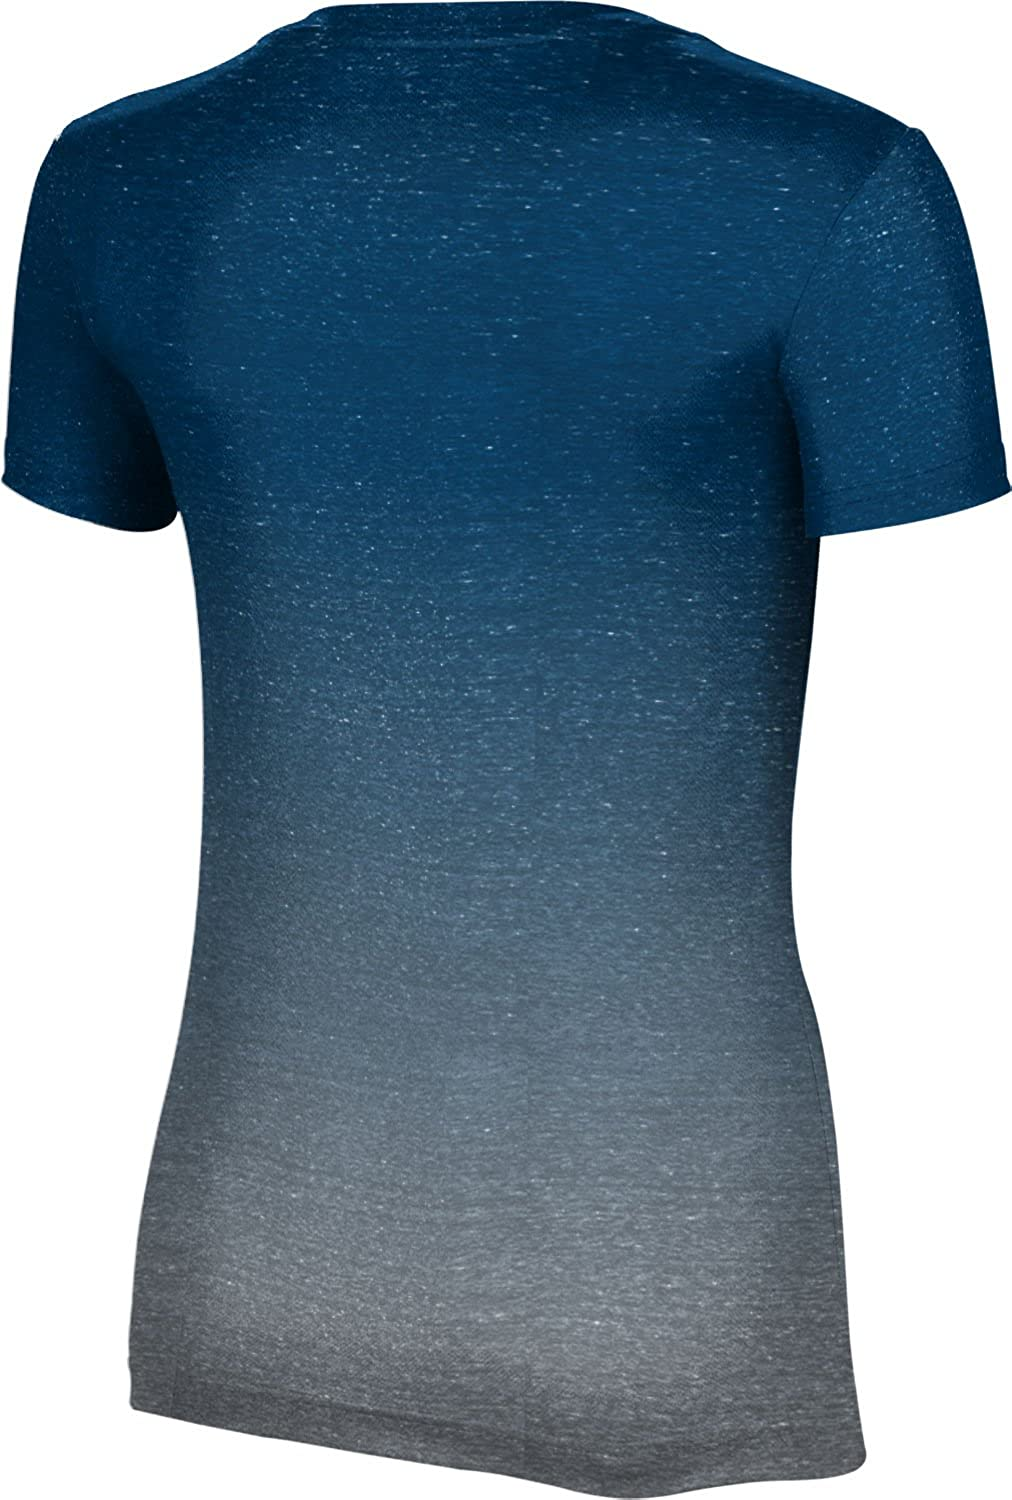 Ombre ProSphere Heartland Community College Girls Performance T-Shirt